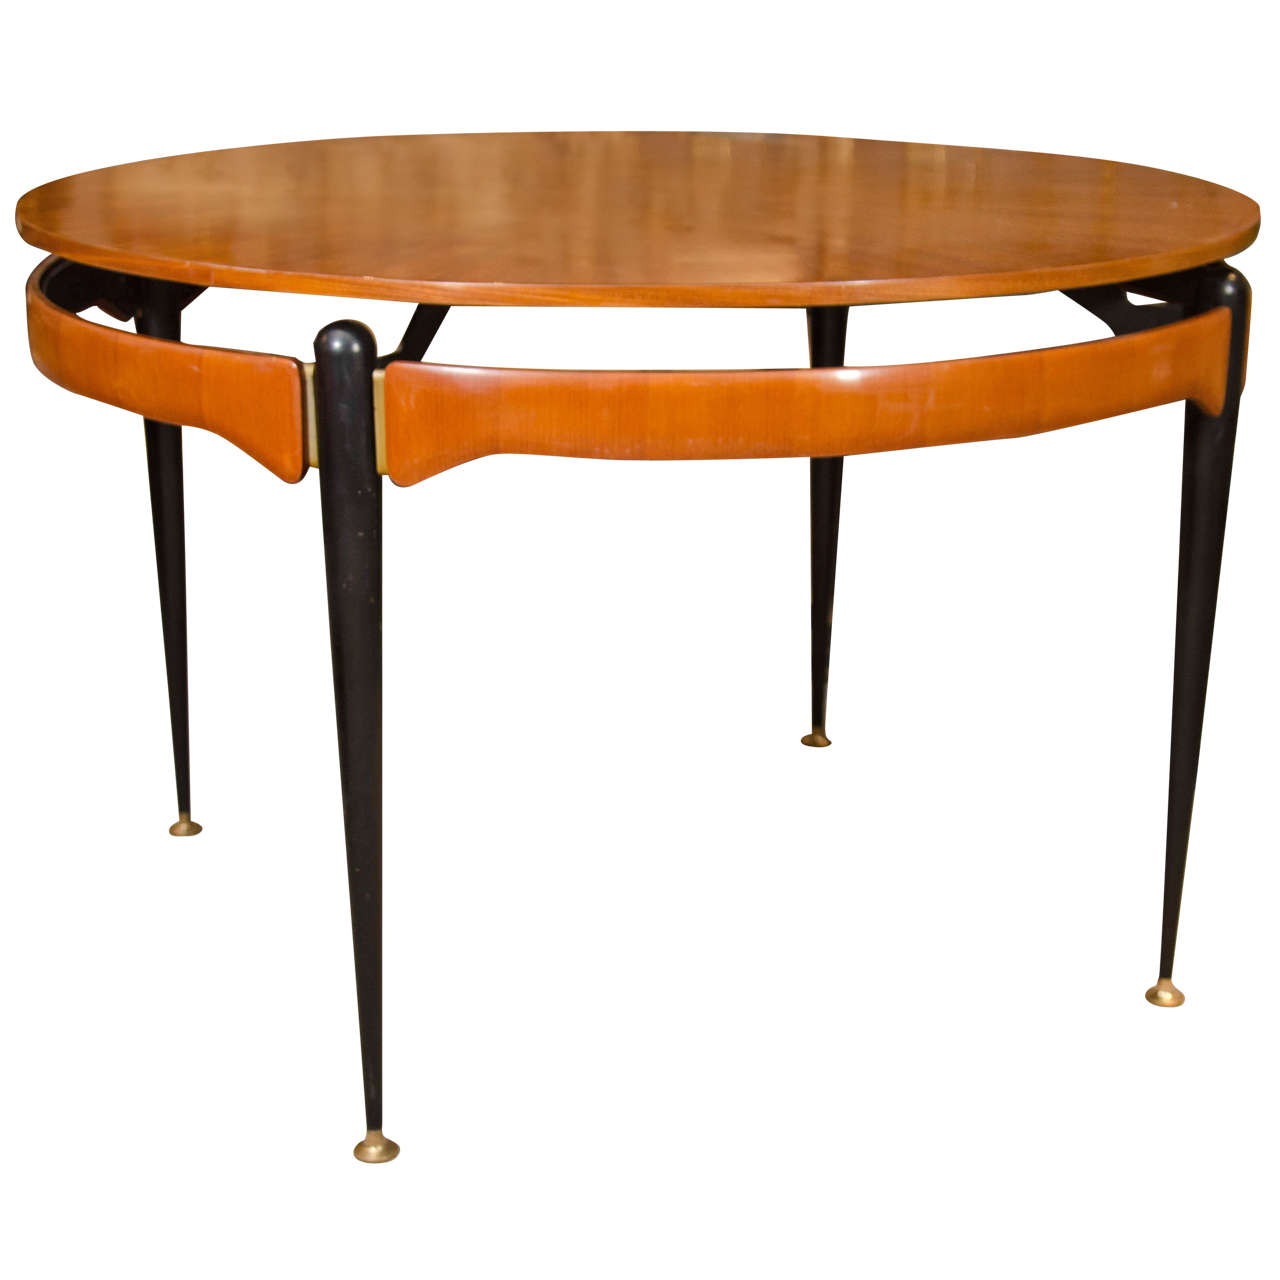 round oak dining or center table for sale at 1stdibs